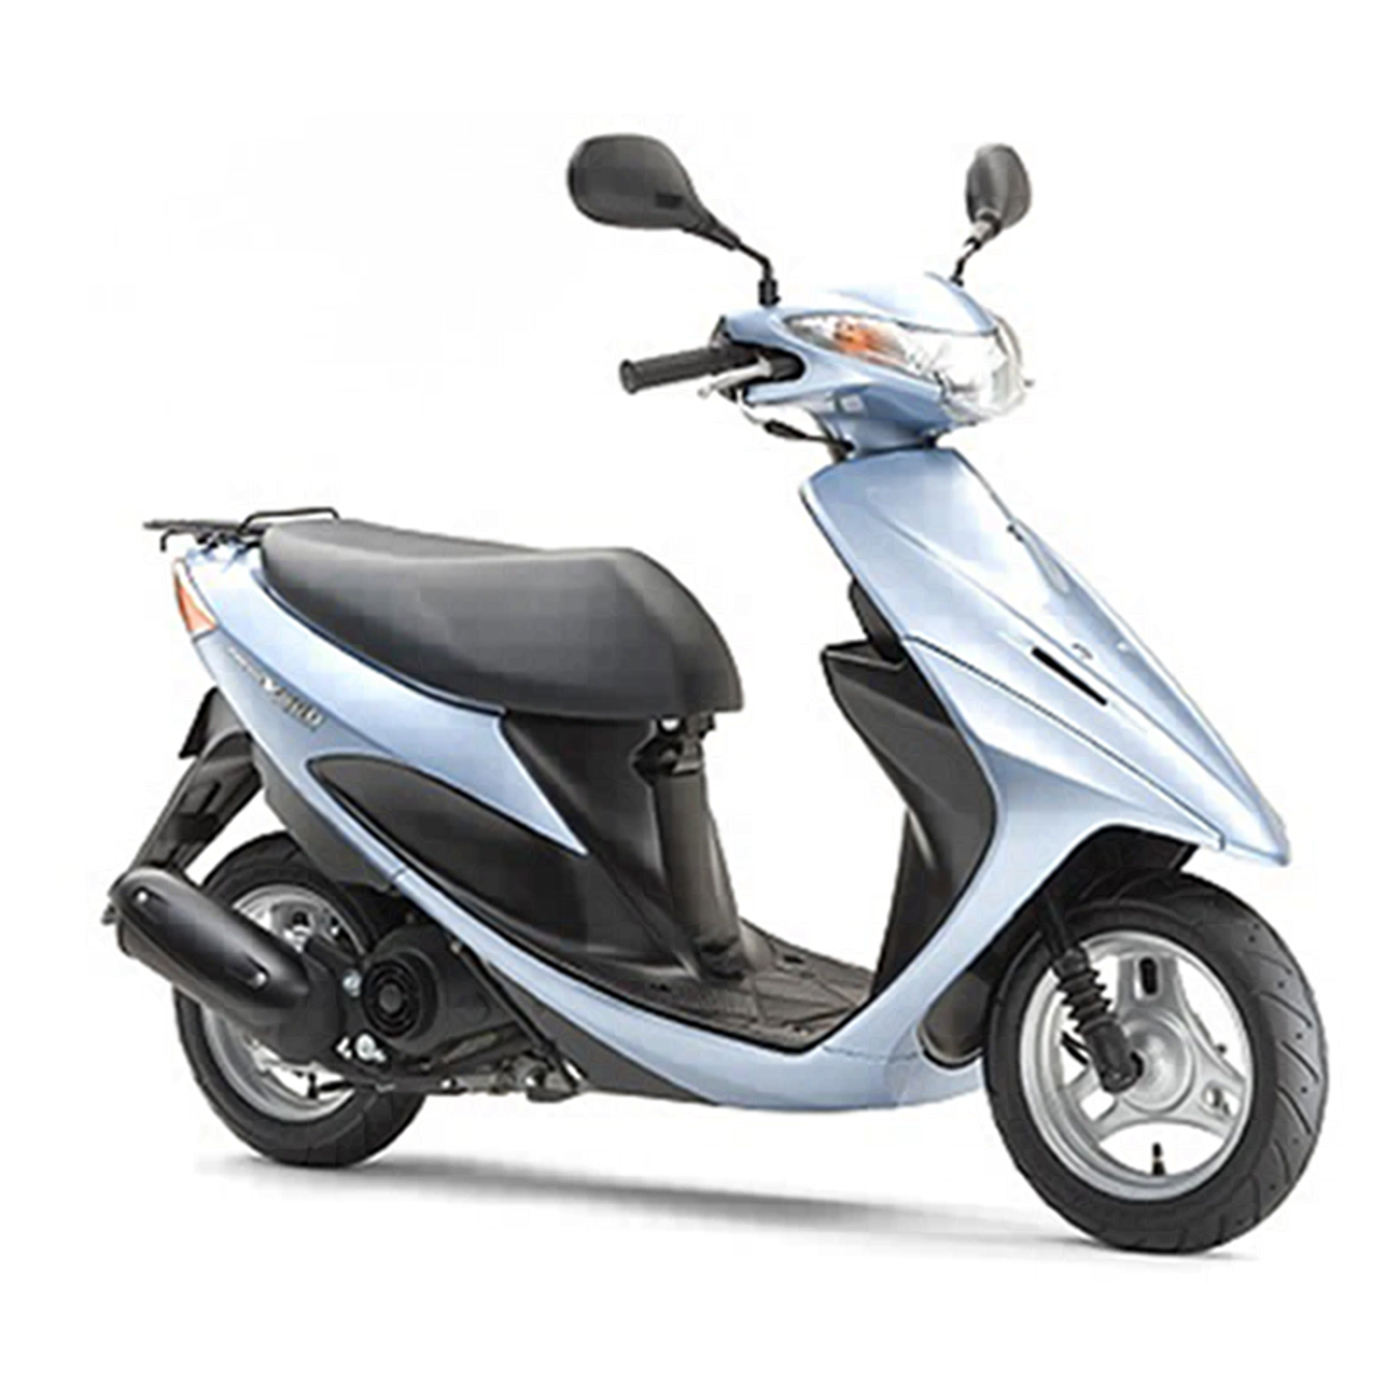 Street leagal used diesel motor gas moped adult mobility scooter